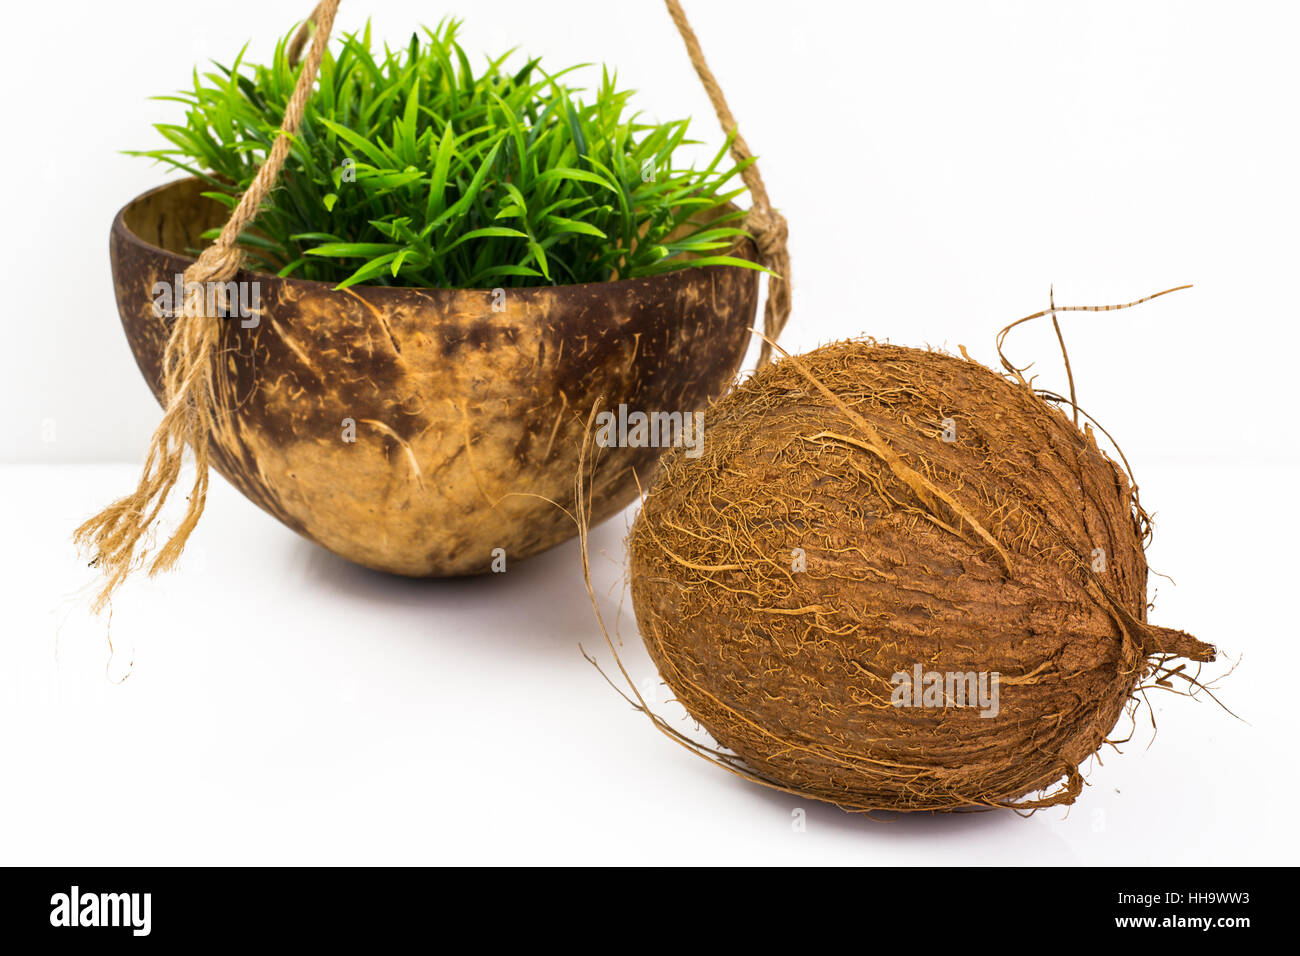 Coconut Shell Craft Stock Photos Coconut Shell Craft Stock Images